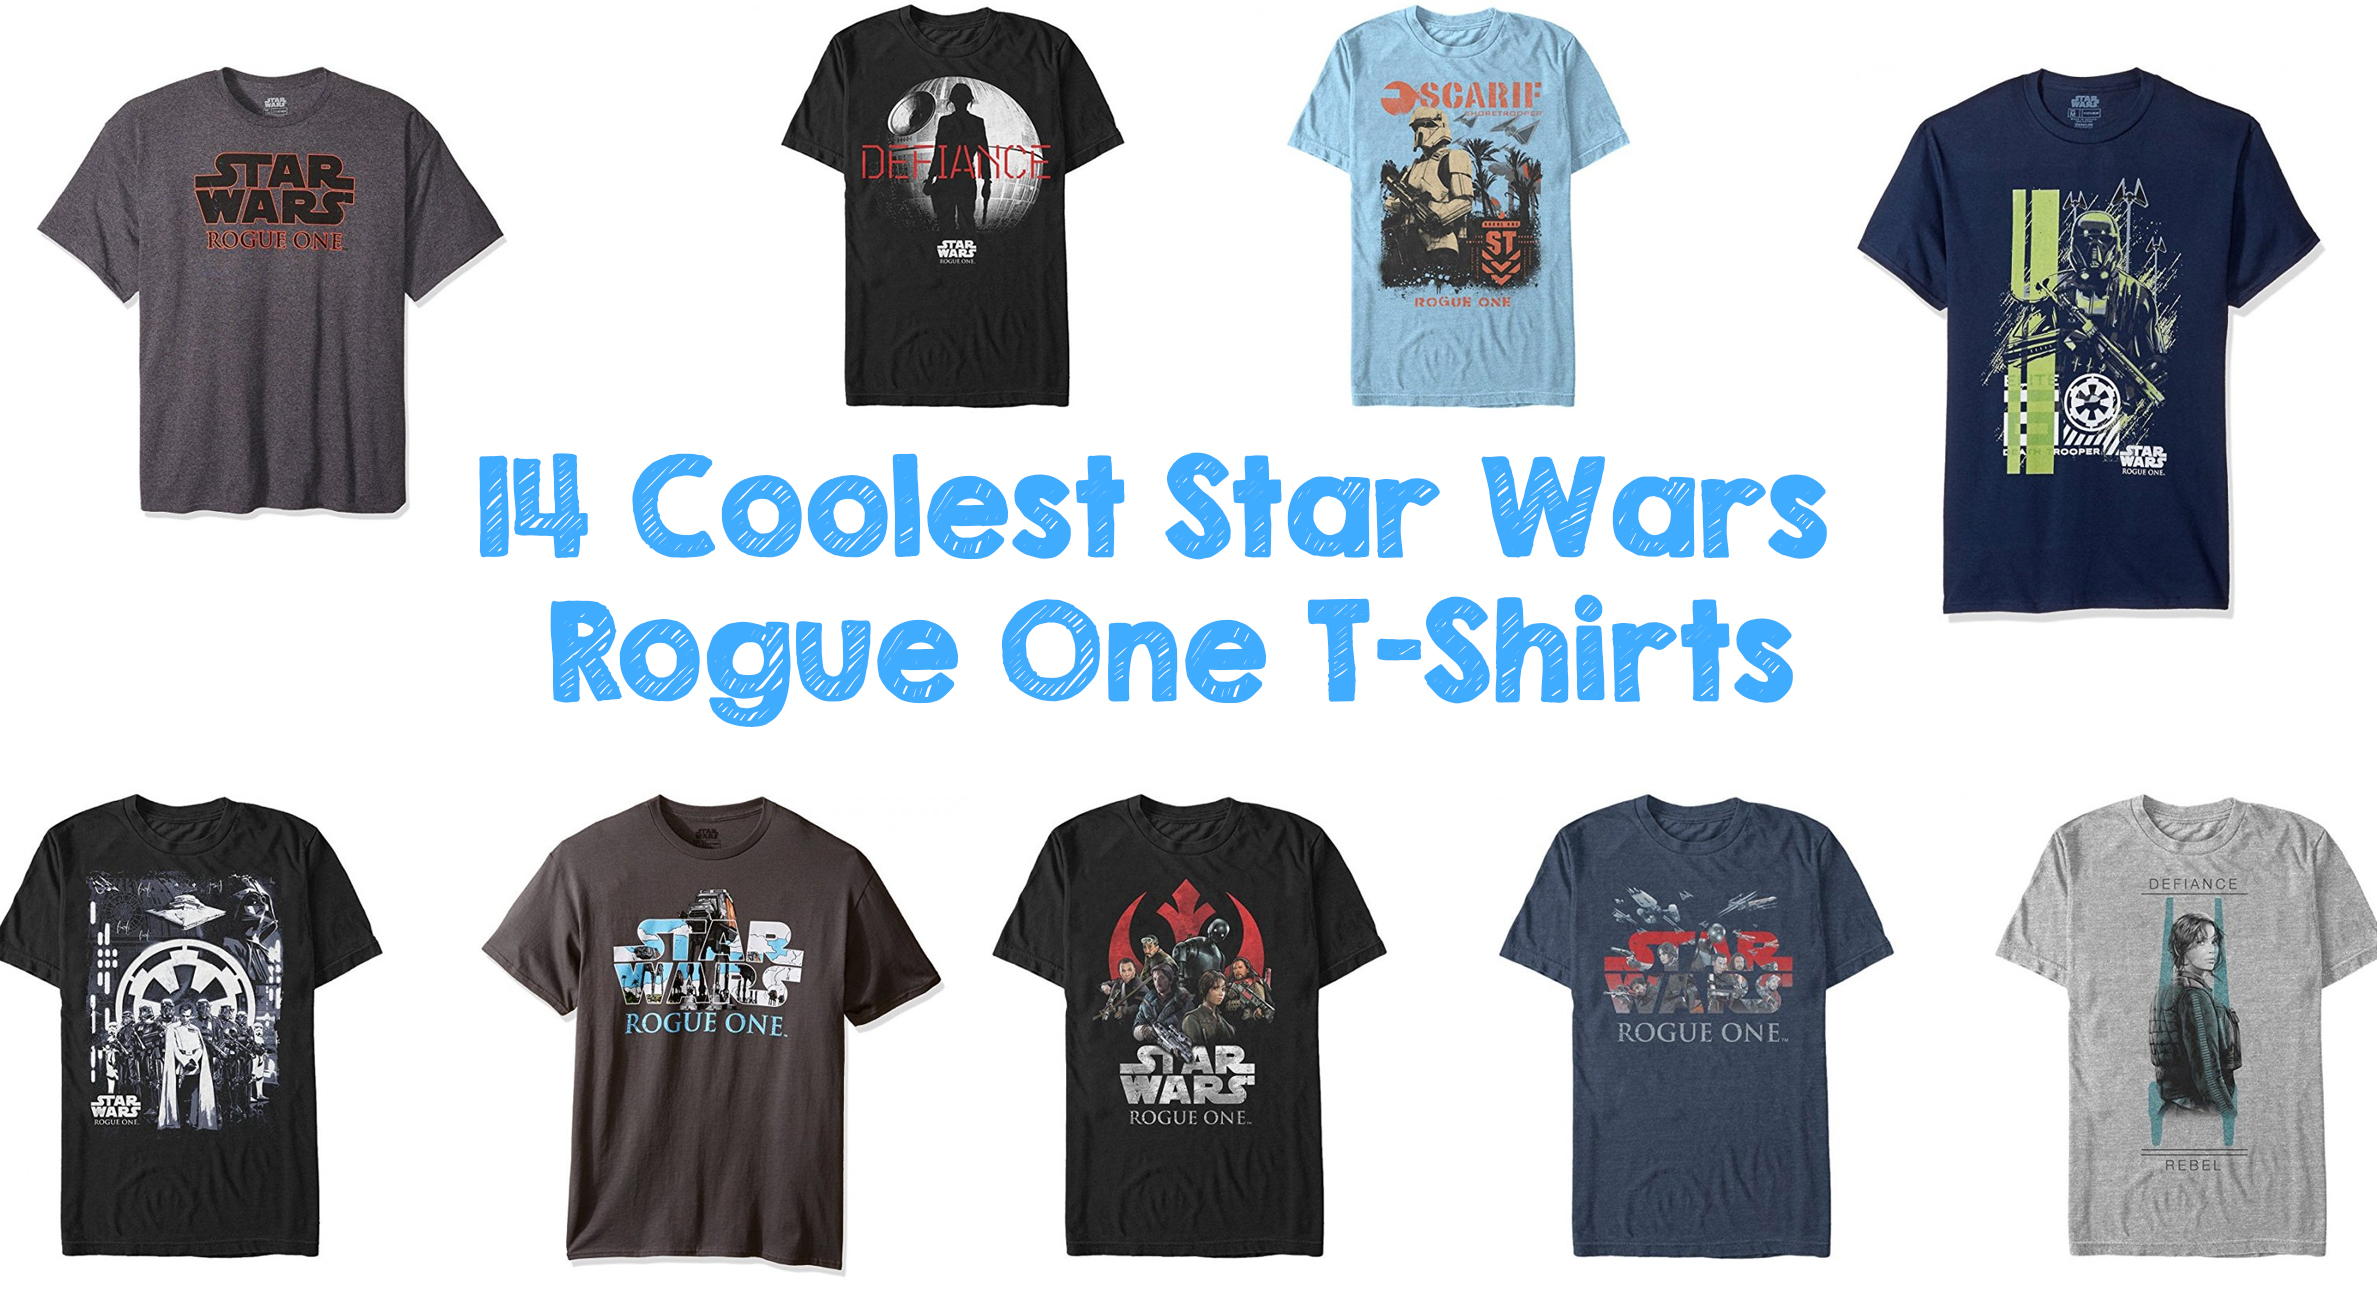 fe93f4ed45b4 14 Coolest Star Wars Rogue One T-Shirts - Walyou